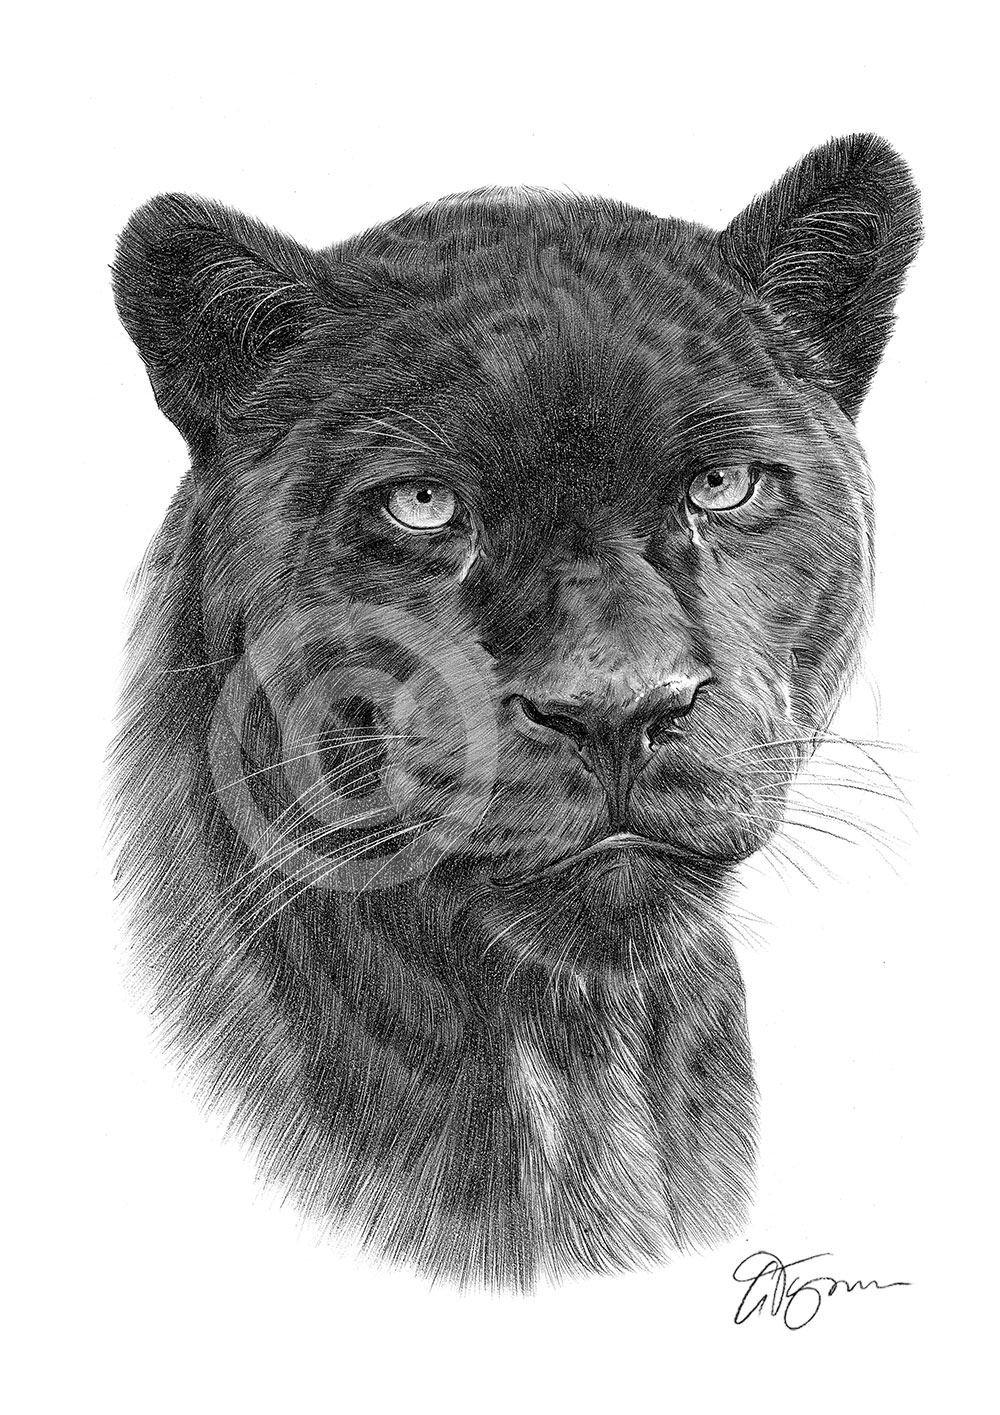 Black Panther pencil drawing by artist Gary Tymon